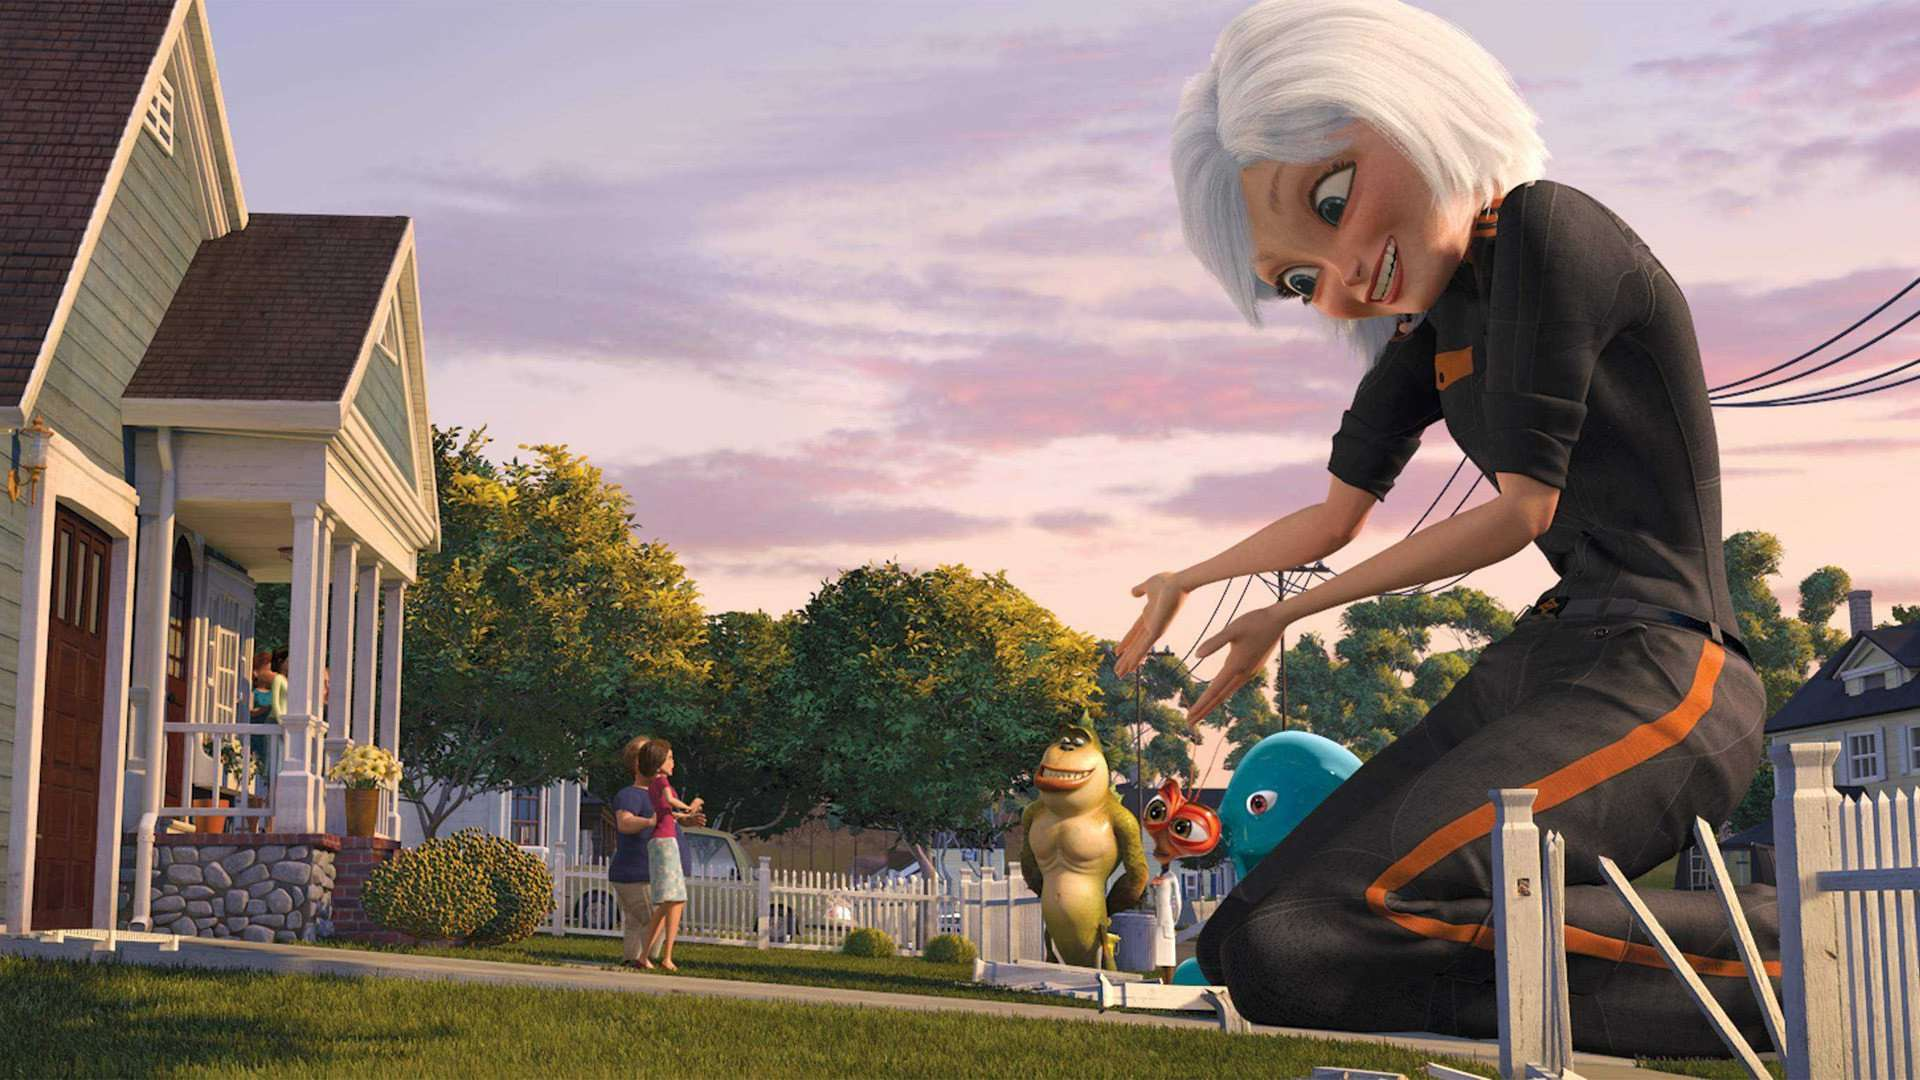 (right from front to back) Susan (voiced by Reese Witherspoon), B.O.B. (voiced by Seth Rogen), Dr Cockroach Phd (voiced by Hugh Laurie) and The Missing Link (voiced by Will Arnett) in Monsters vs Aliens (2009)